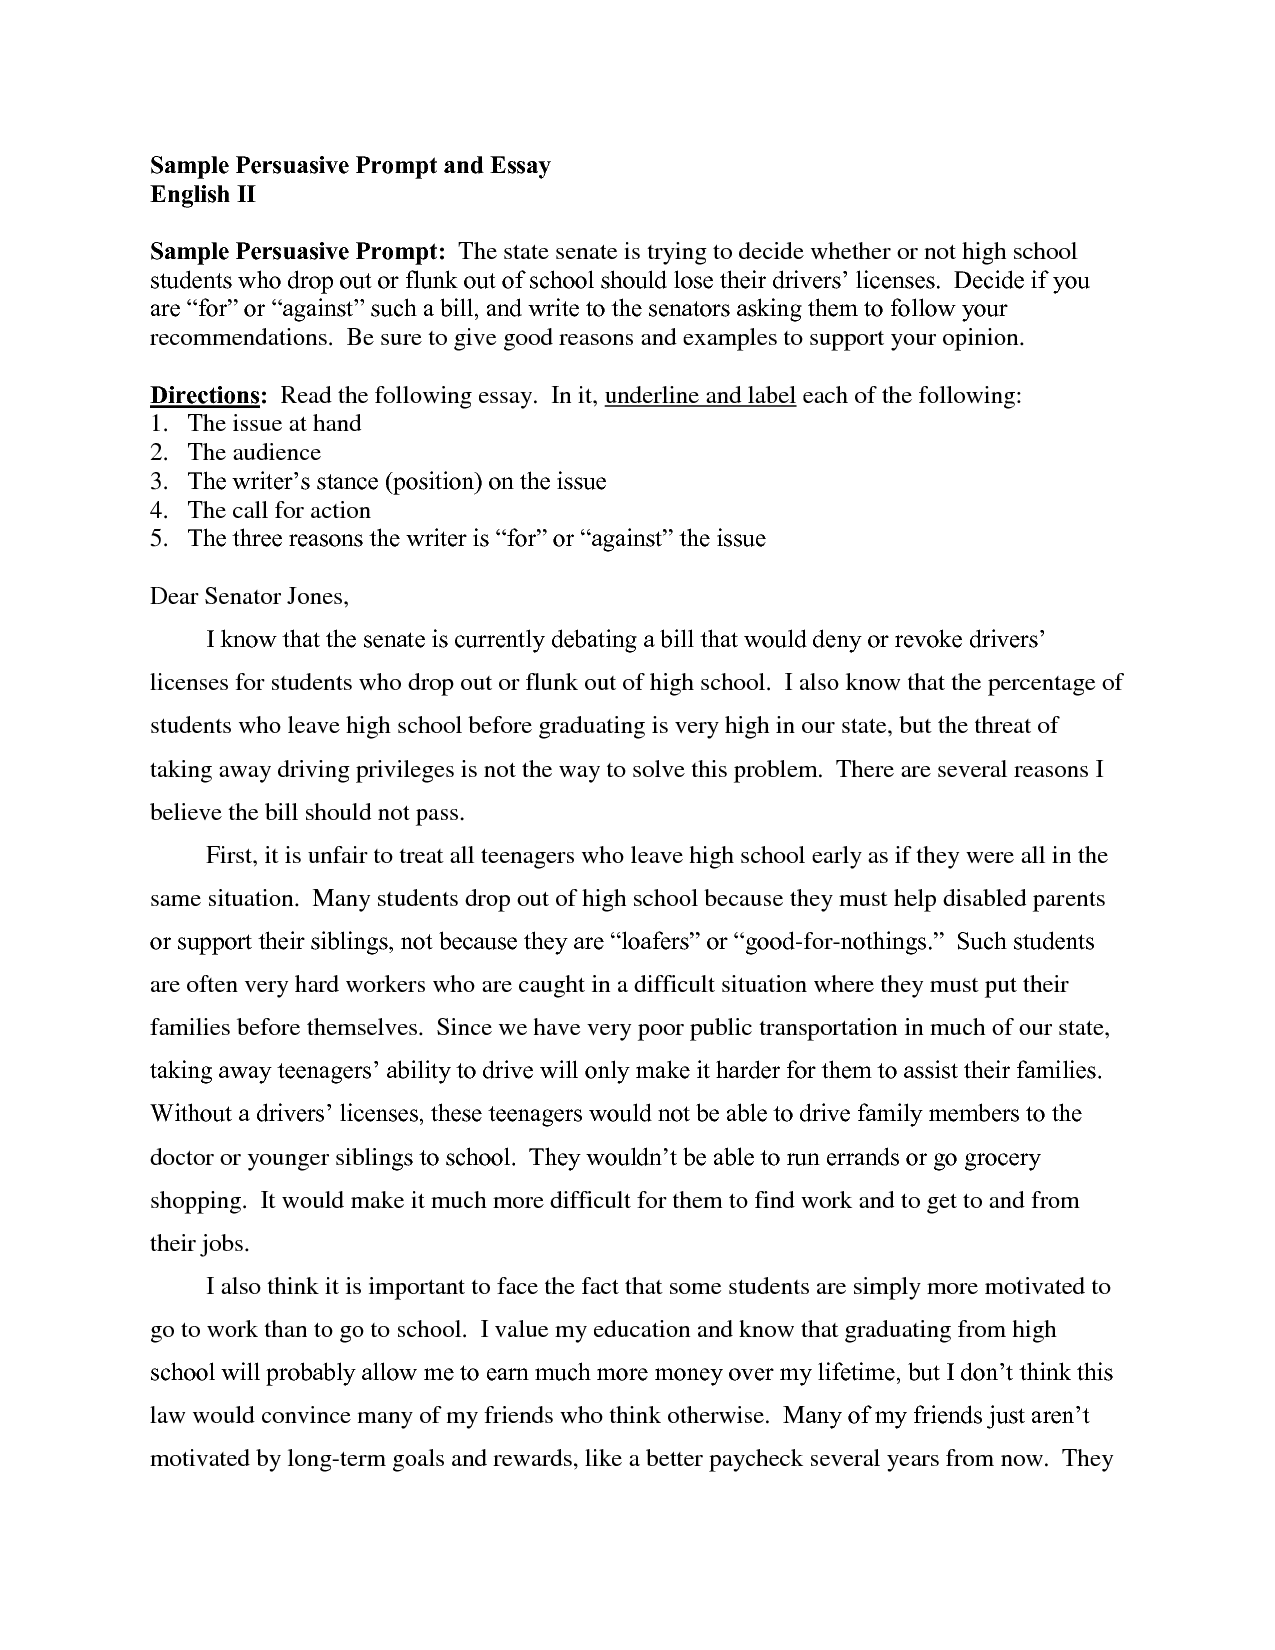 Reflective Essay On English Class  Essay On Healthy Eating Habits also English Class Essay  Argumentative Research Paper Topics High School  Persuasive Essay Papers